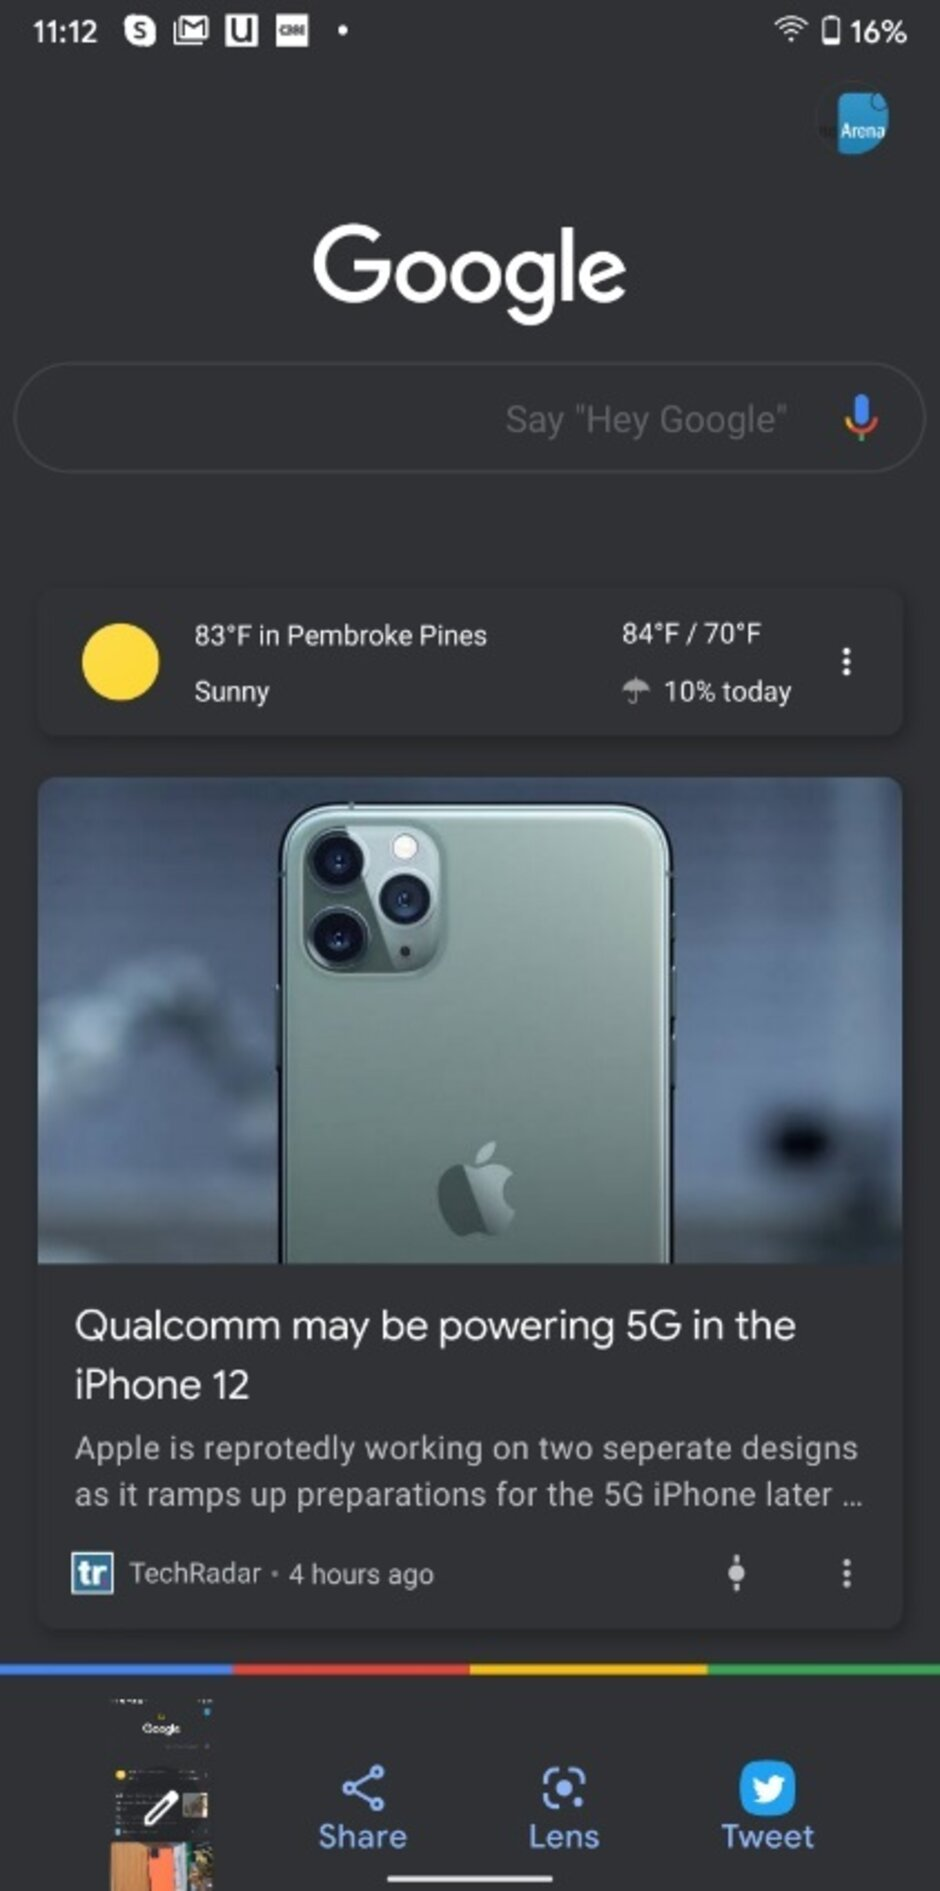 The beta version of the Google app now features Dark Mode for all Android users - Beta version of popular Google app gets Dark Mode for all Android users